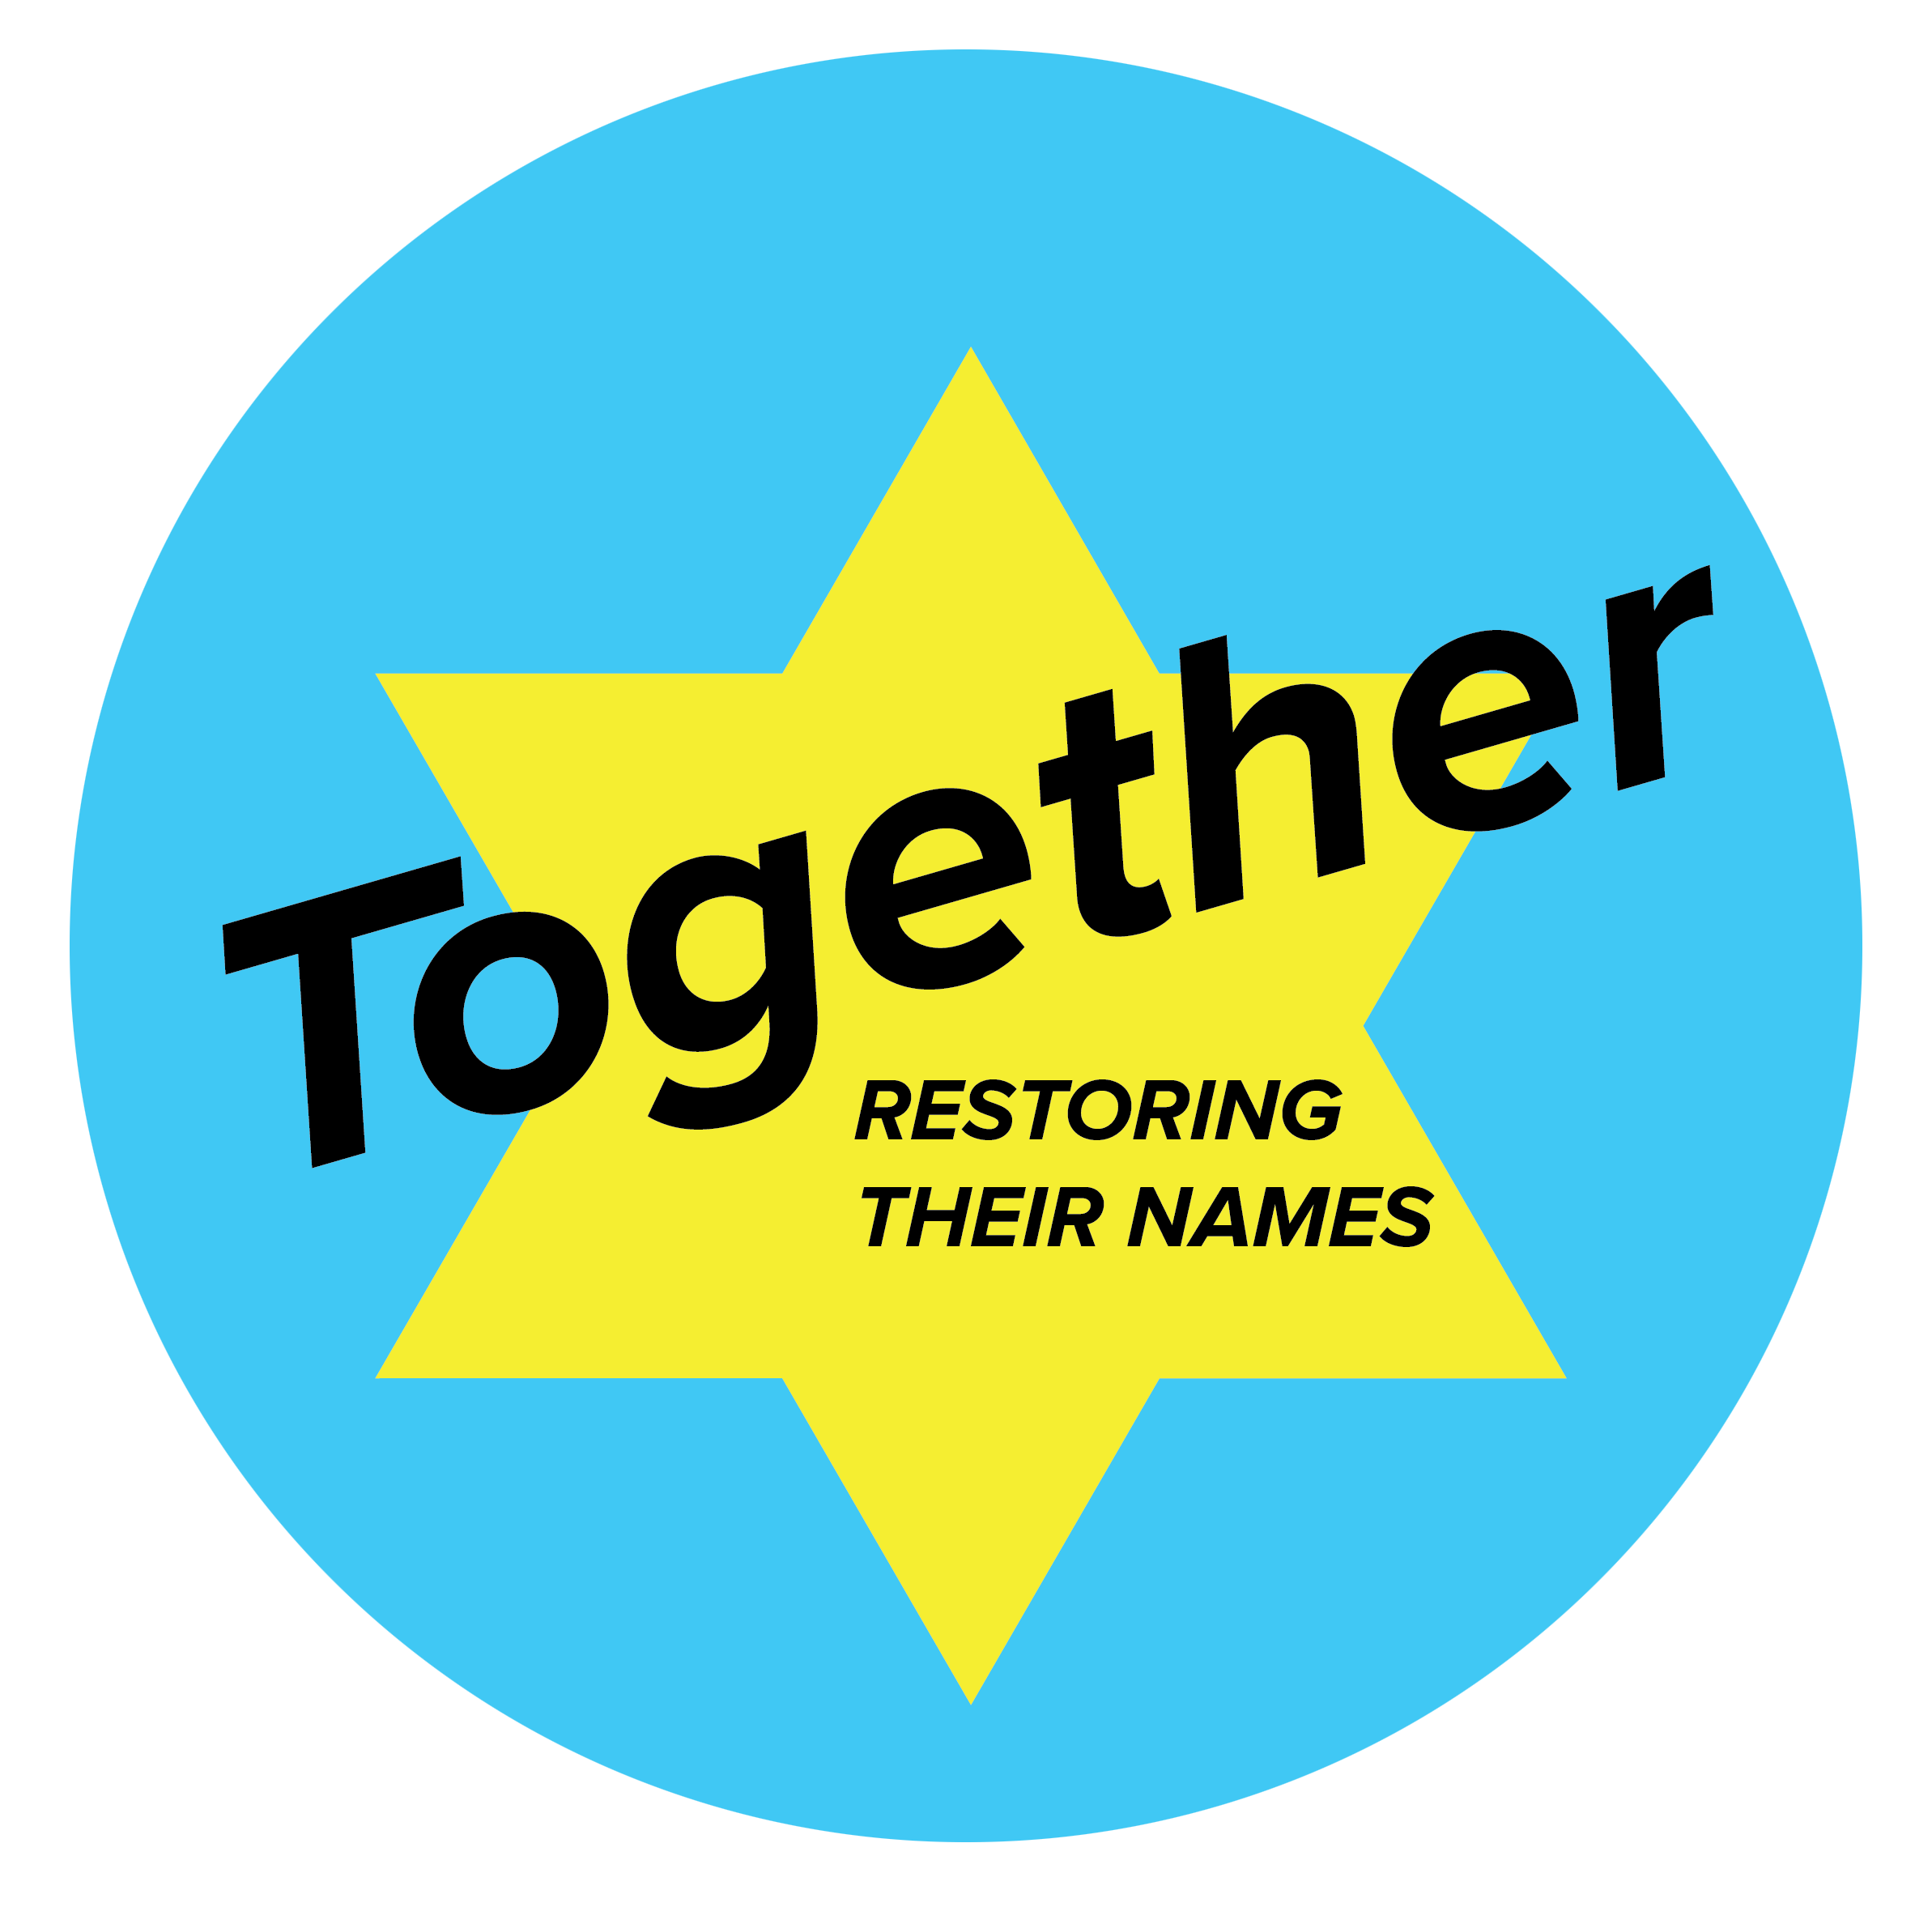 Together - logo_Blue bg (2) copy.png